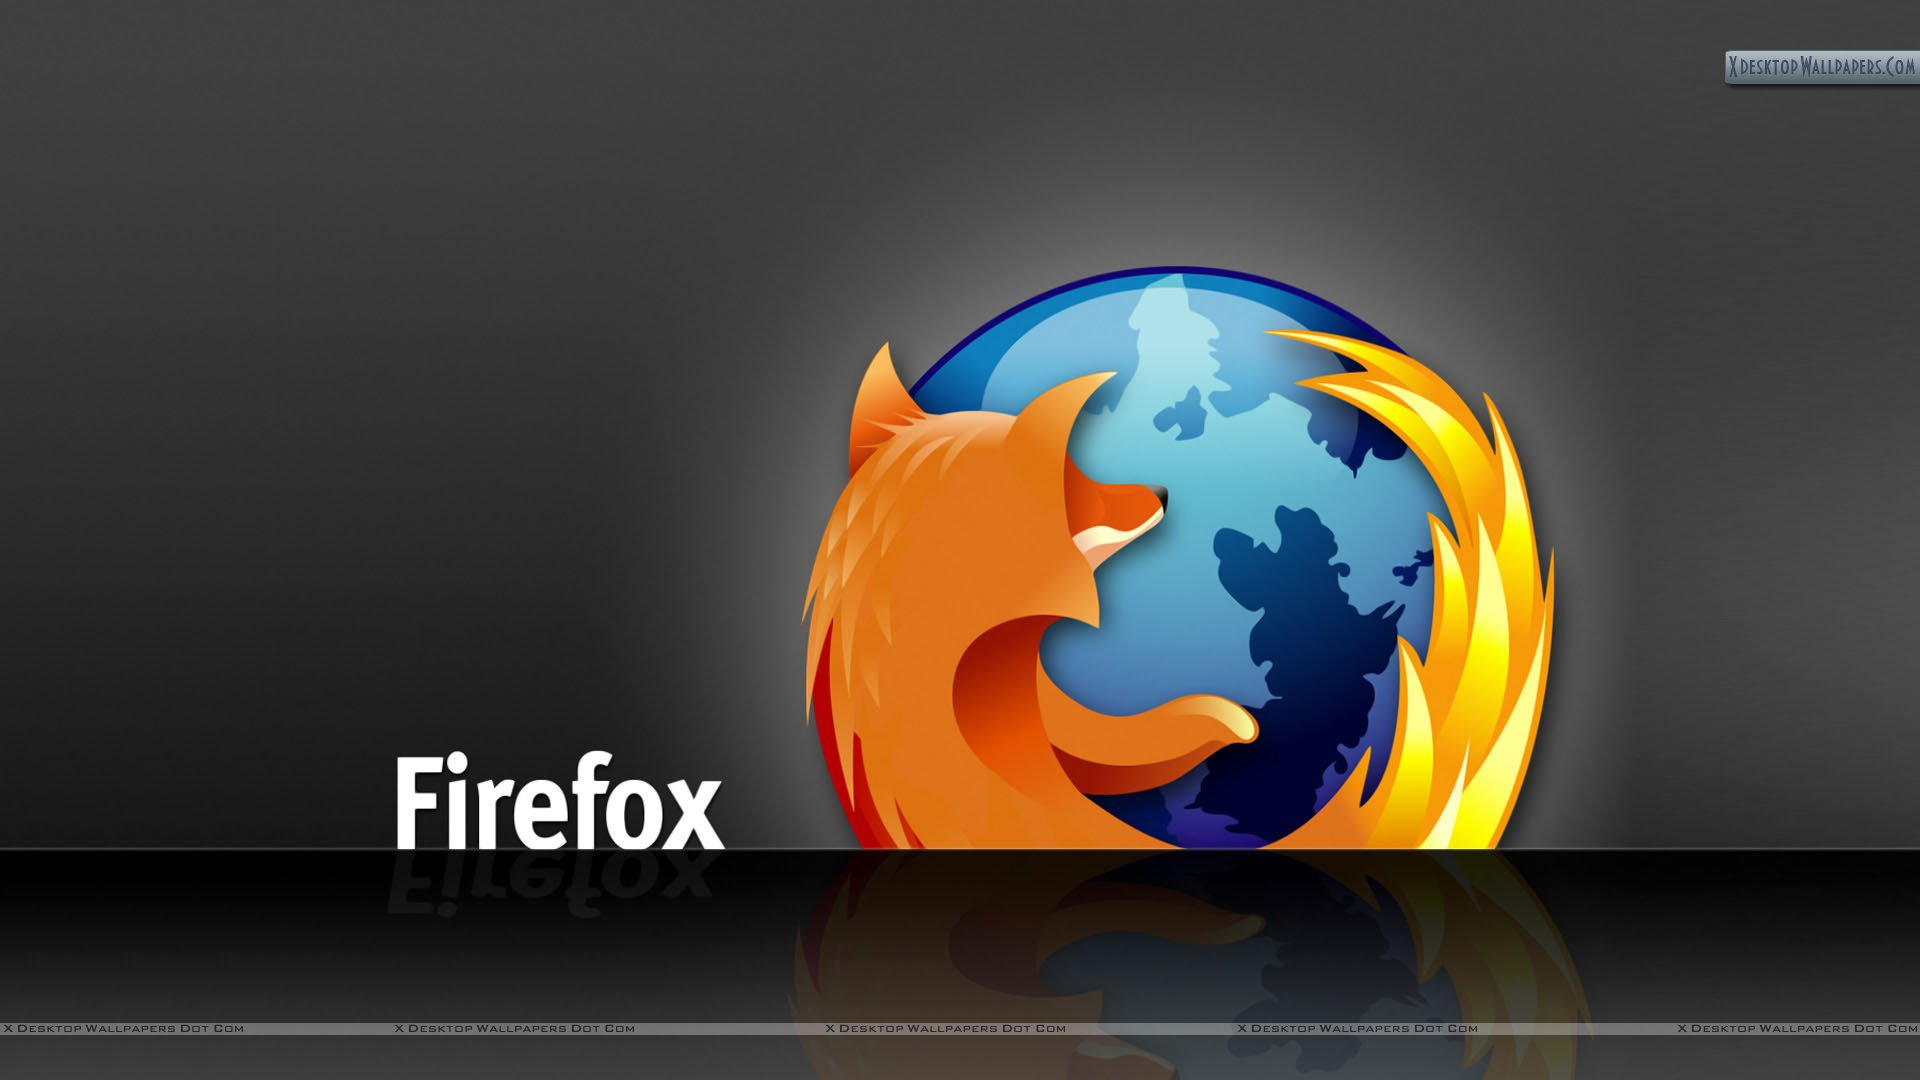 firefox awesome desktop wallpaper on black background wallpaper